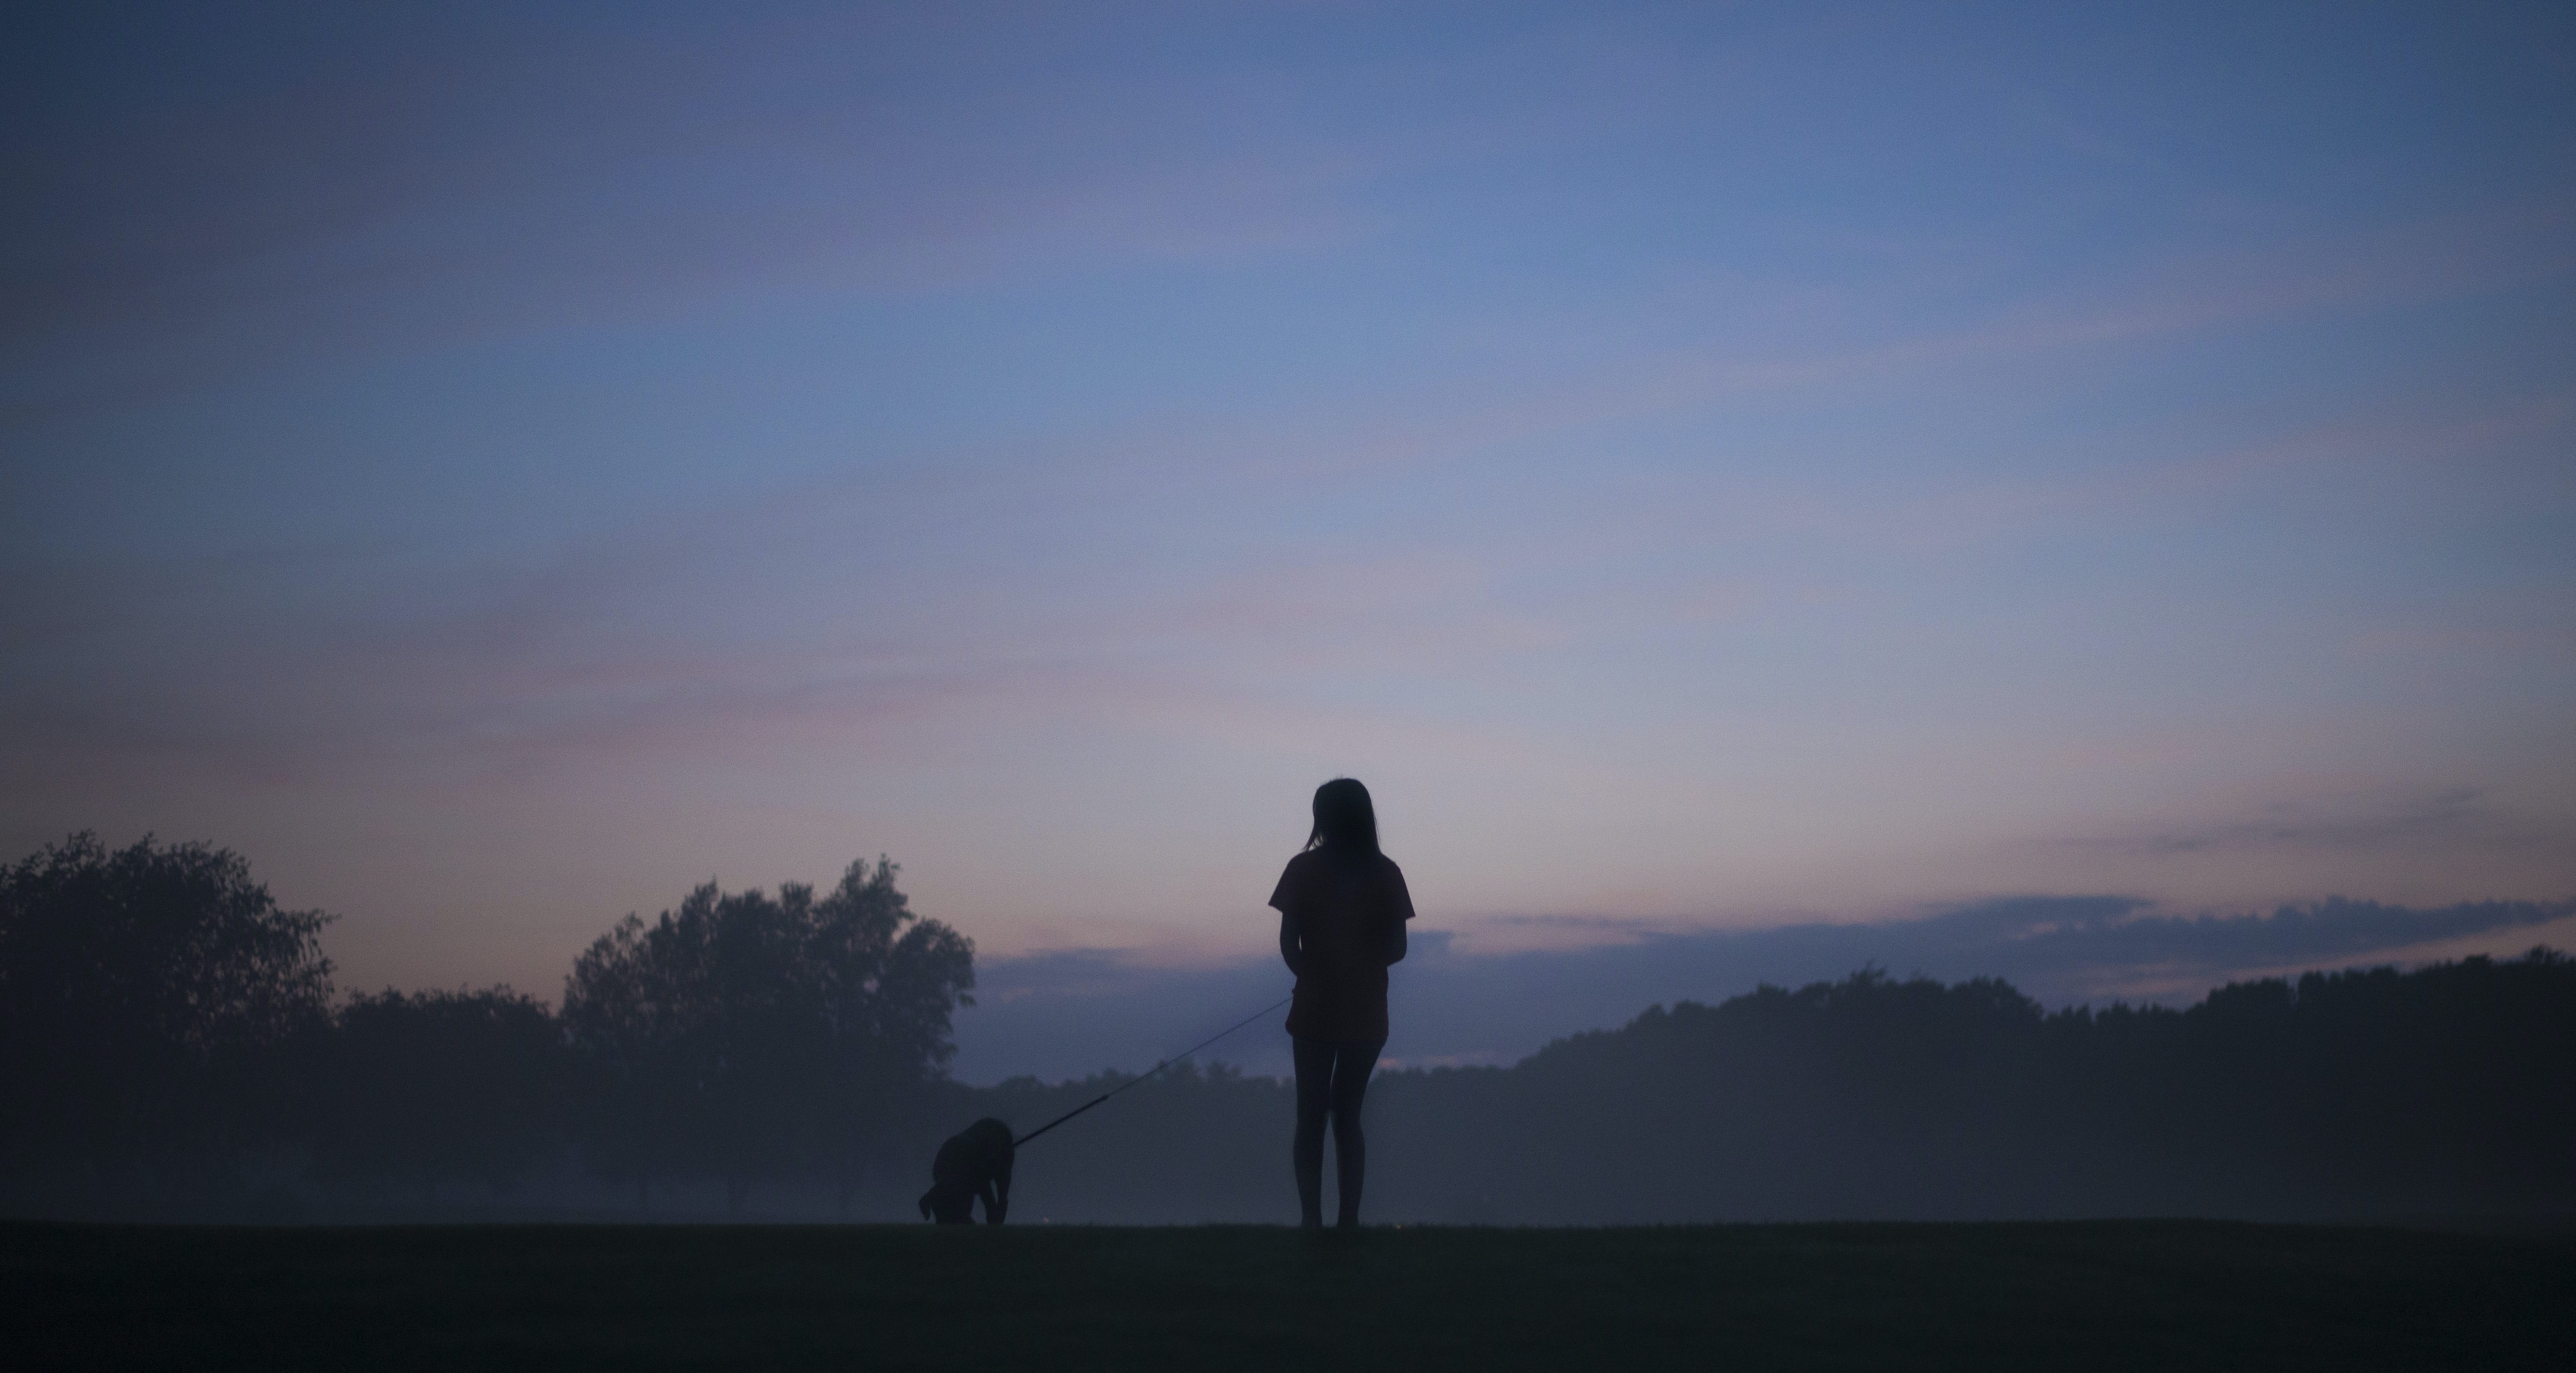 silhouette person standing holding dog